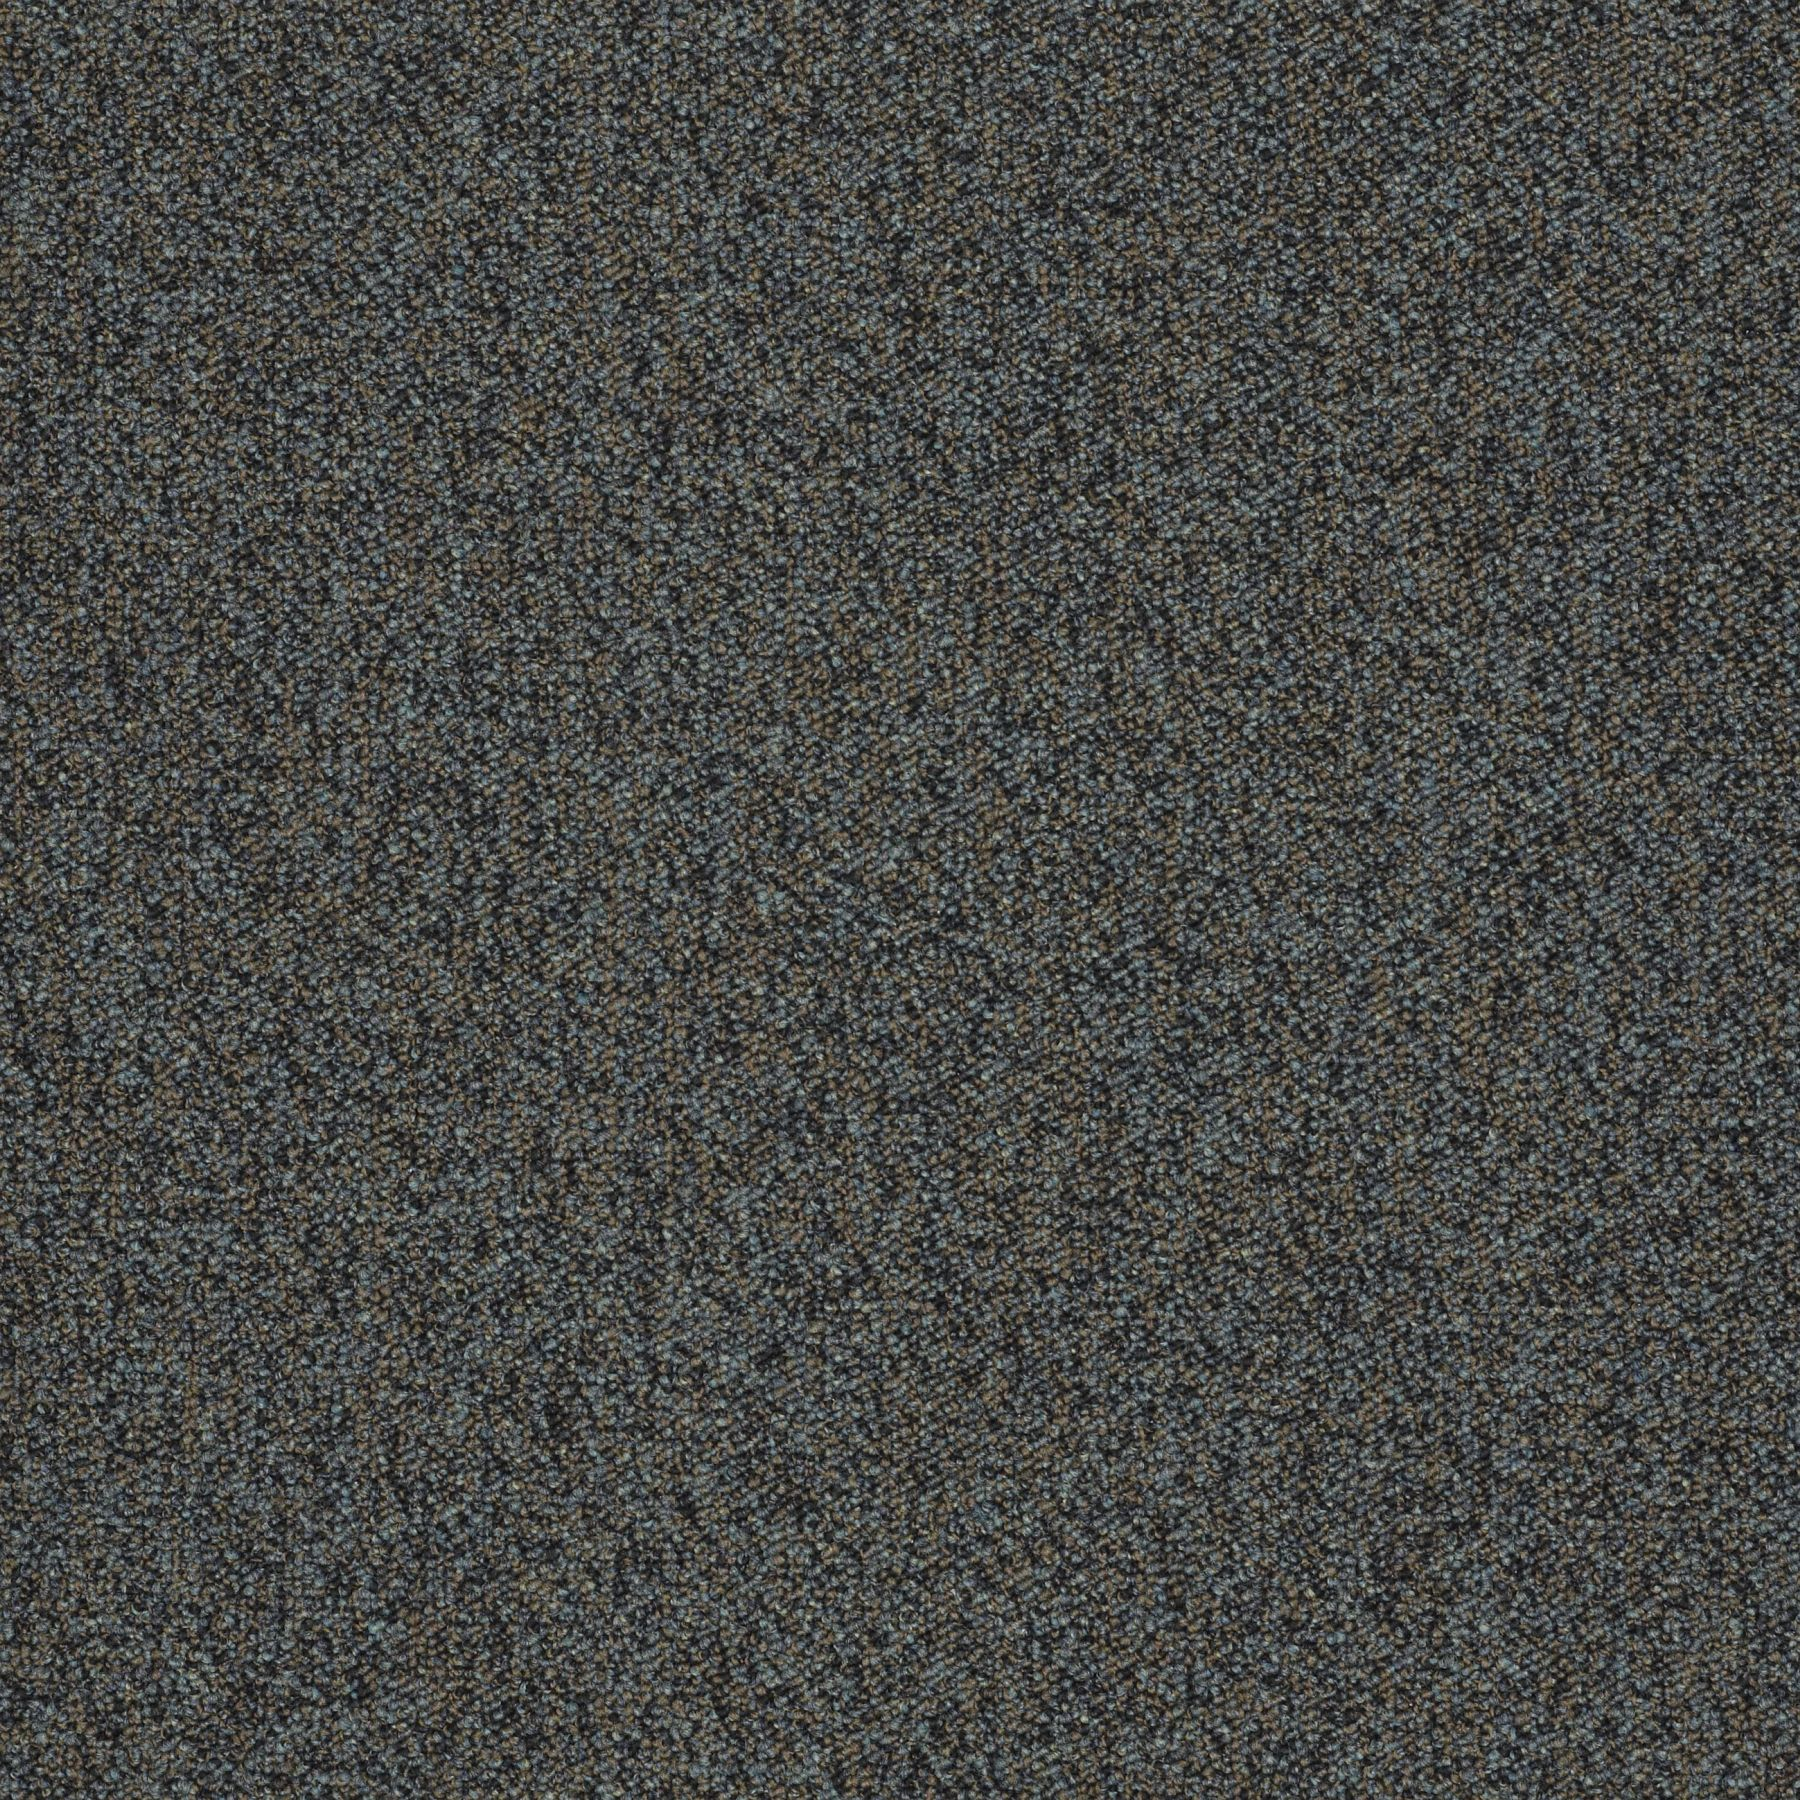 54676 Scoreboard II 28 SLP Color 00402 Touch Down Commercial Carpet